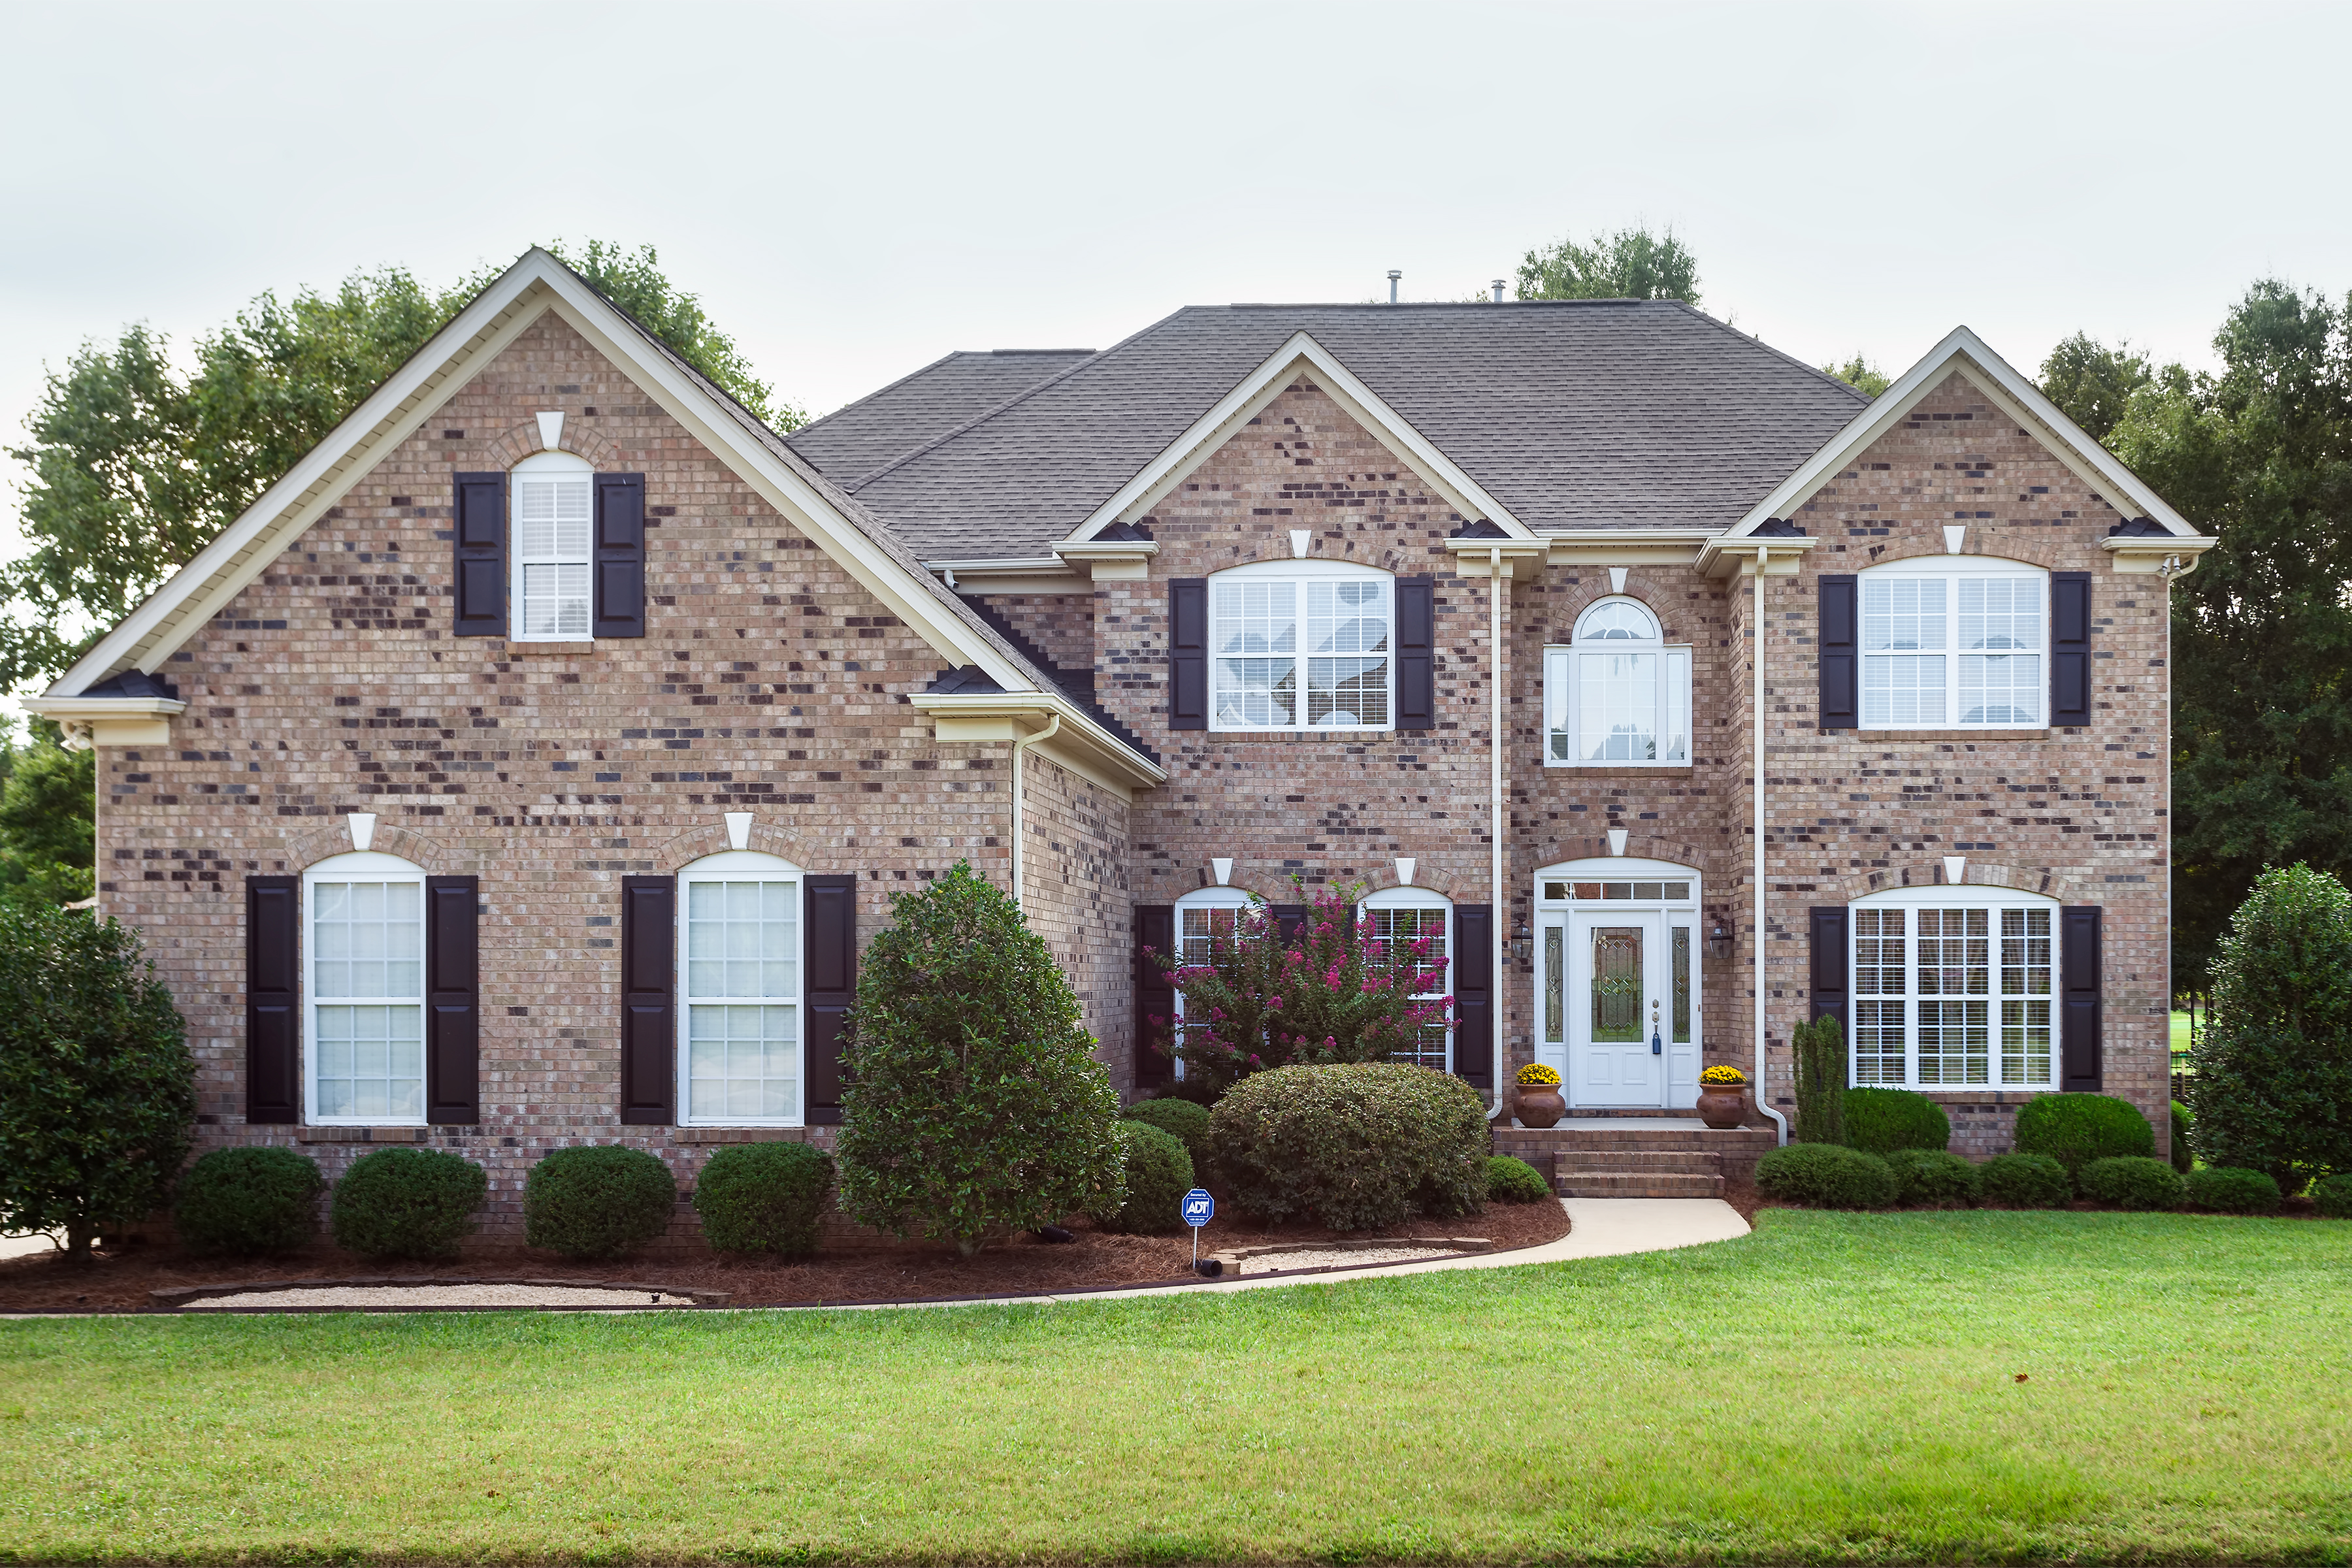 Just Listed By Don Anthony Realty 5 Bedroom 4 Bath Home For Sale In Matthews Nc In Emerald